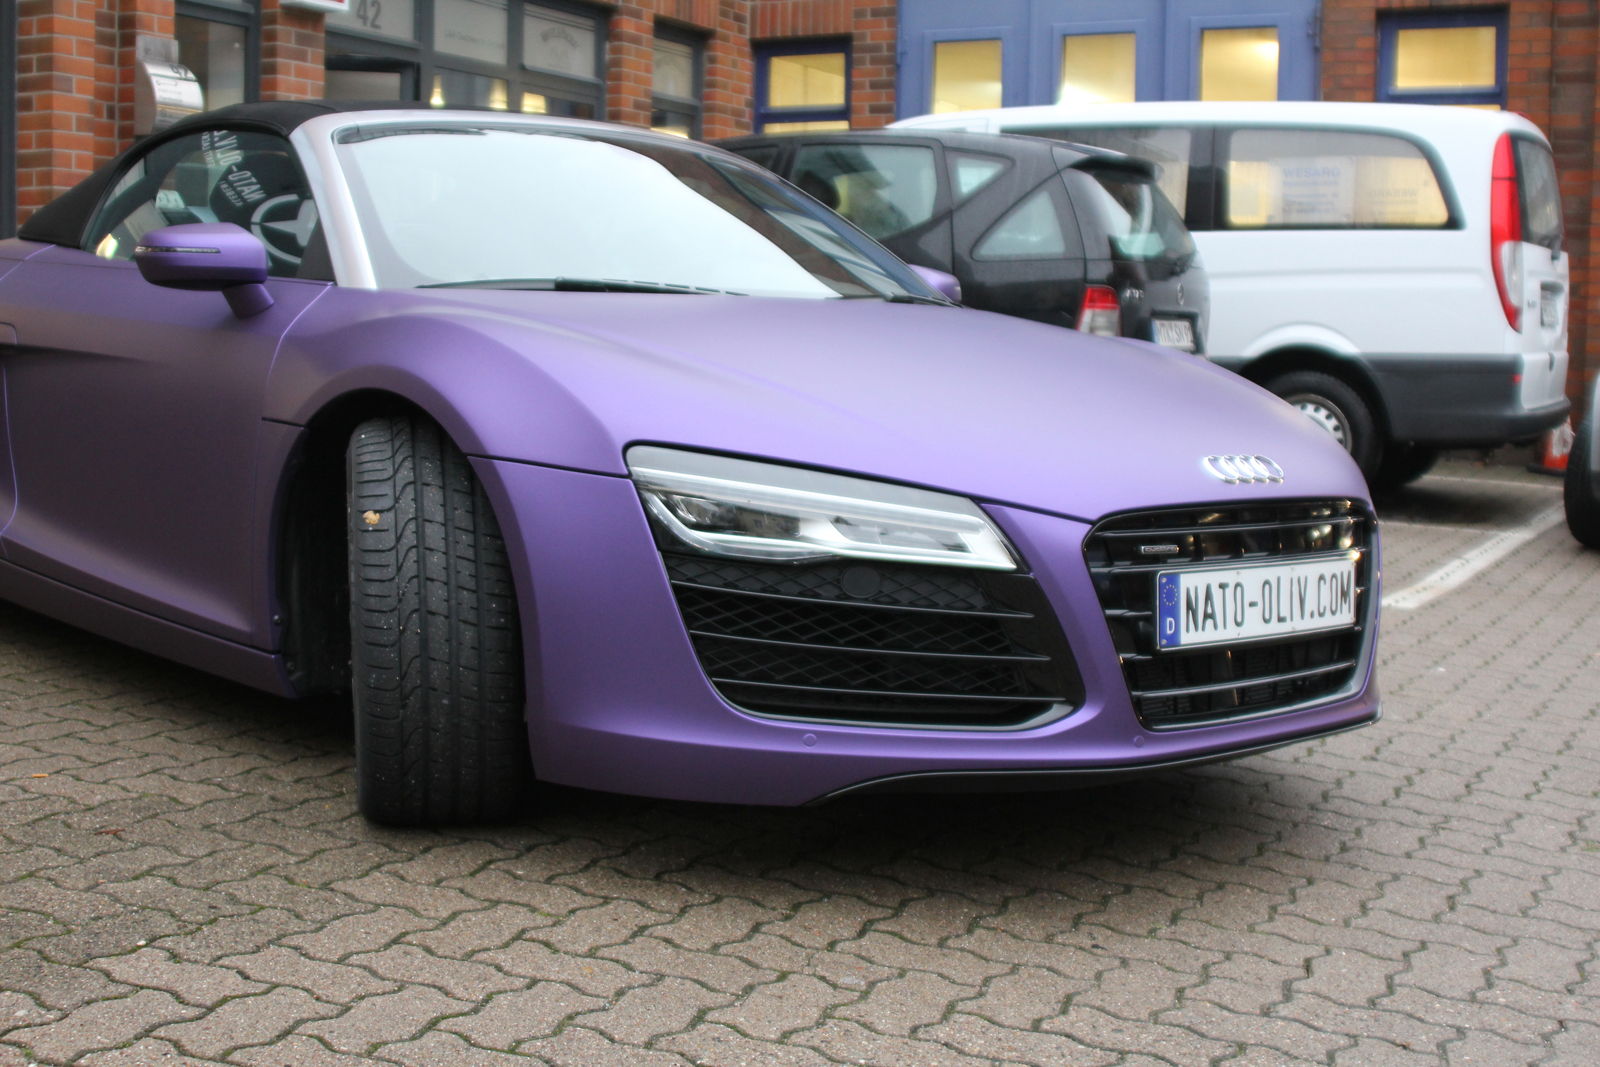 AUDI_R8_PURPLE_MATT_METALLIC_CAR-WRAPPING_05